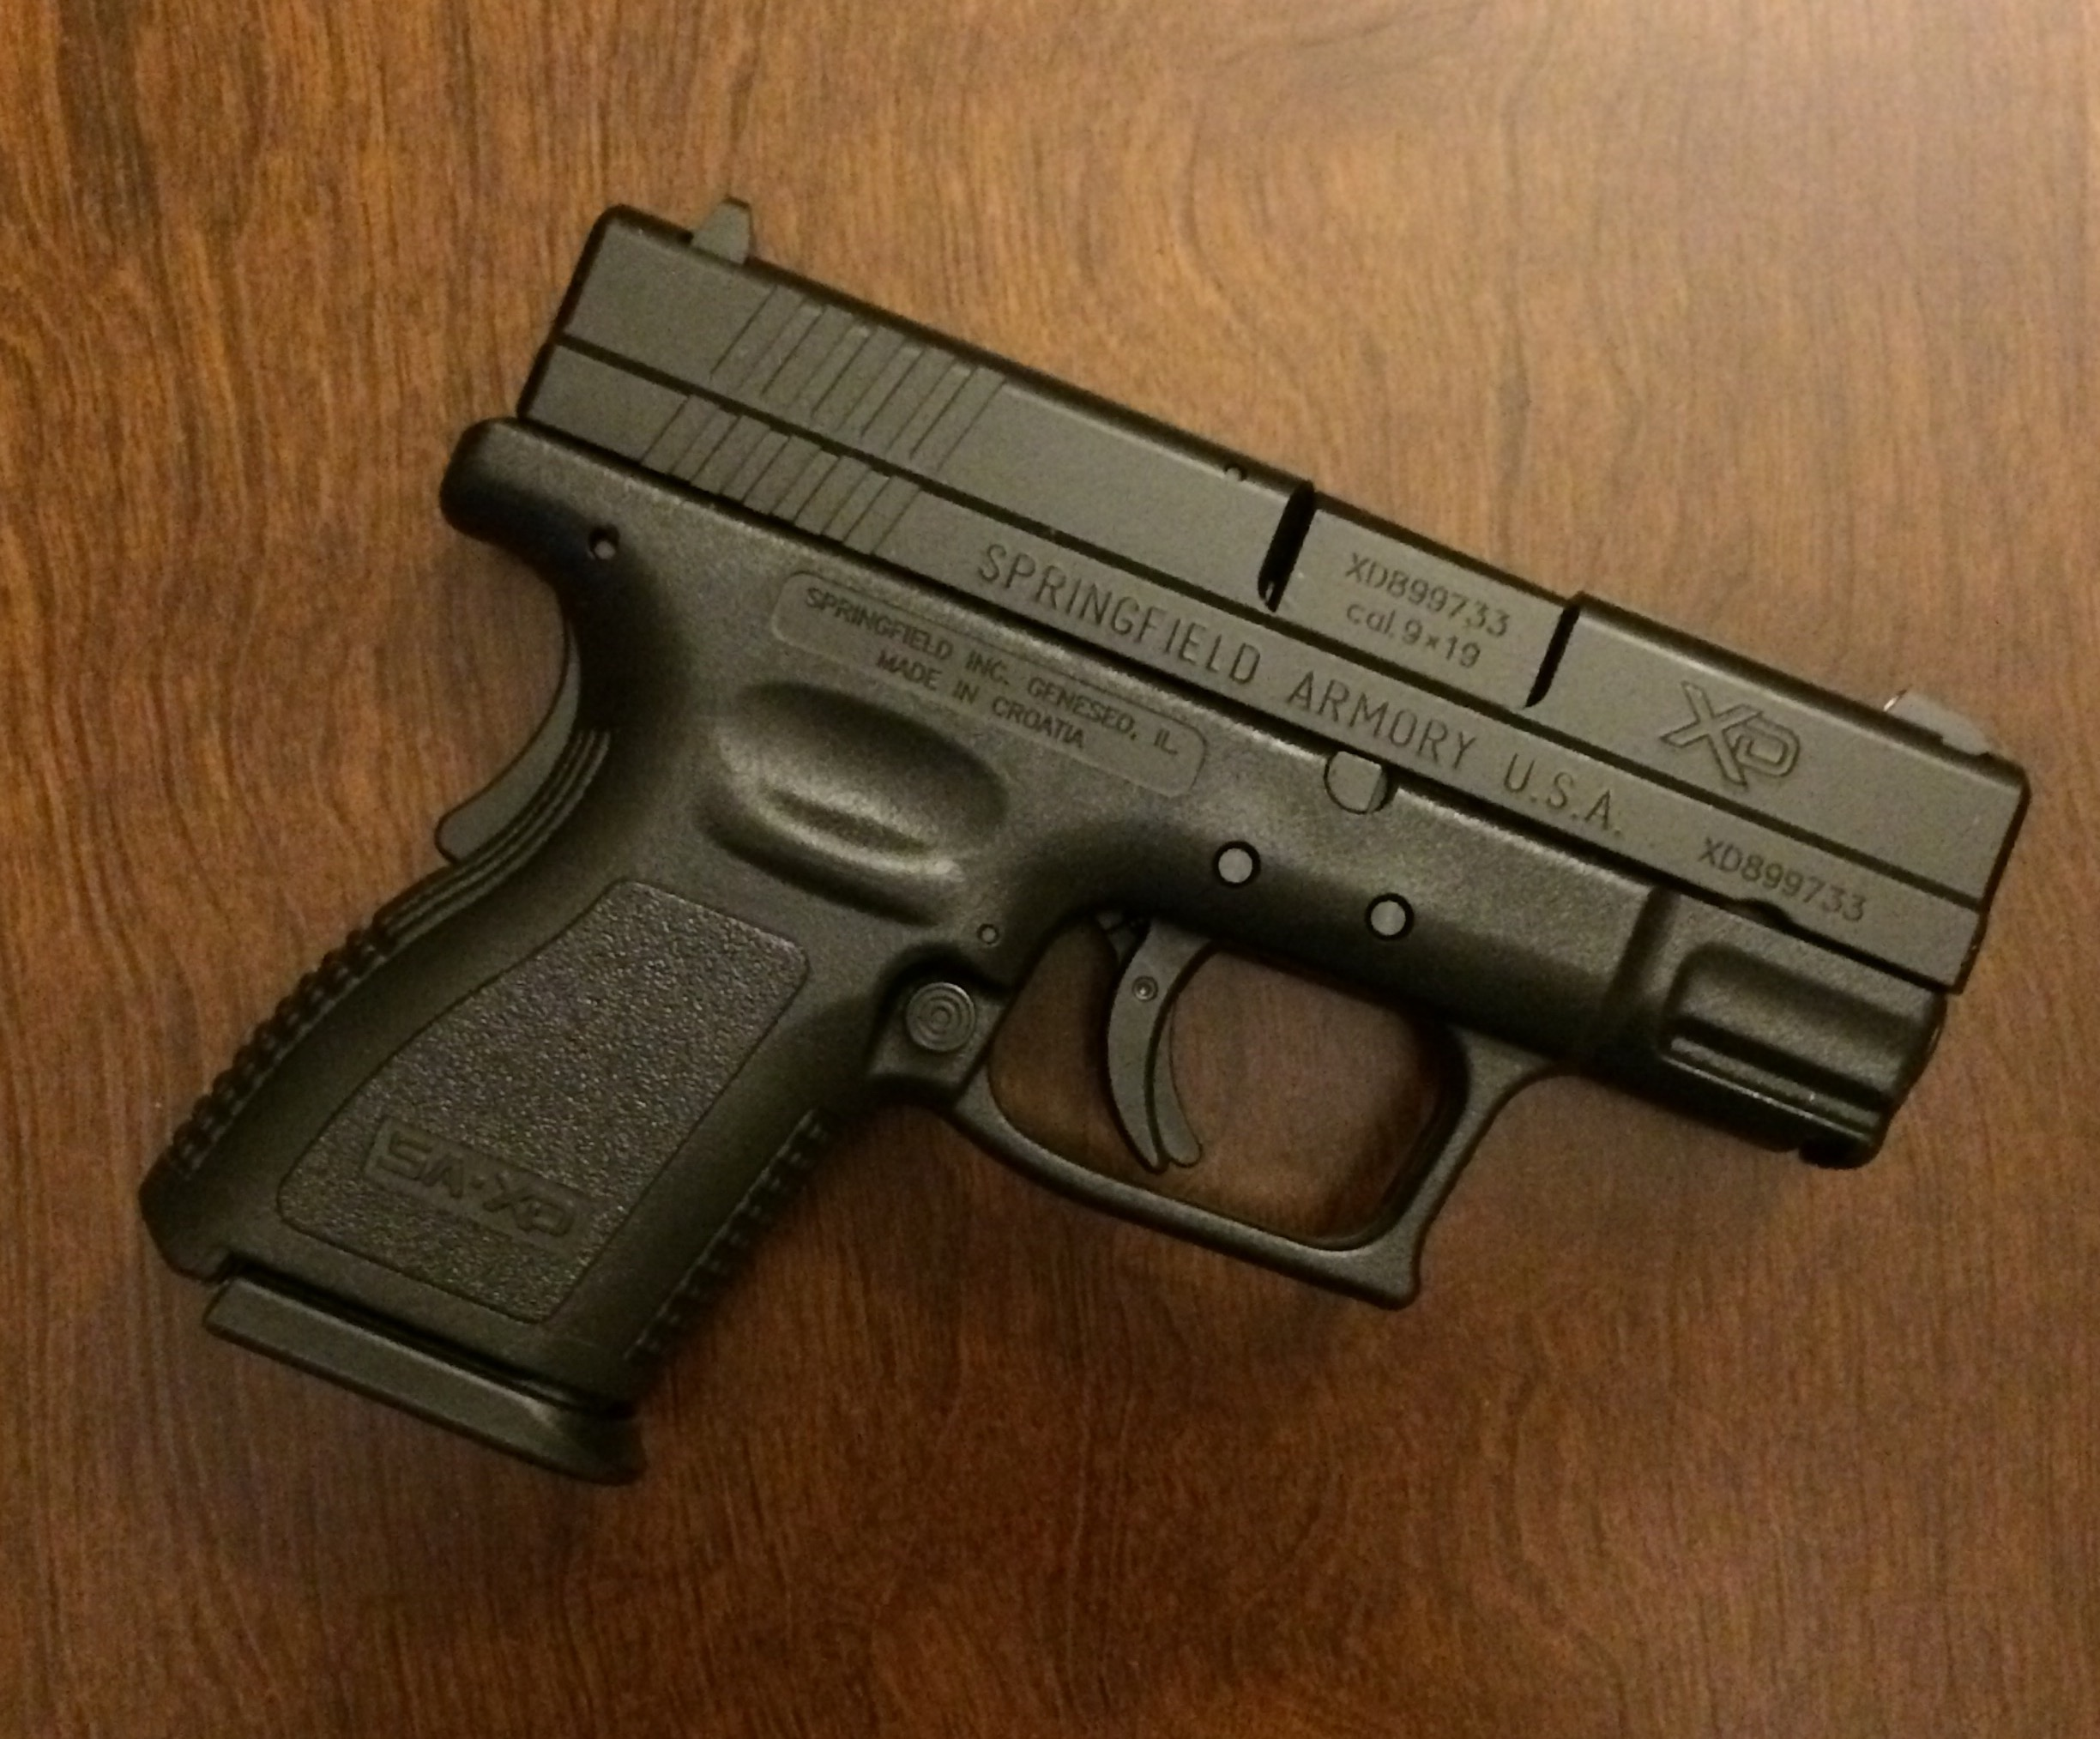 Best 0 double stack 9mm (new)-image.jpeg